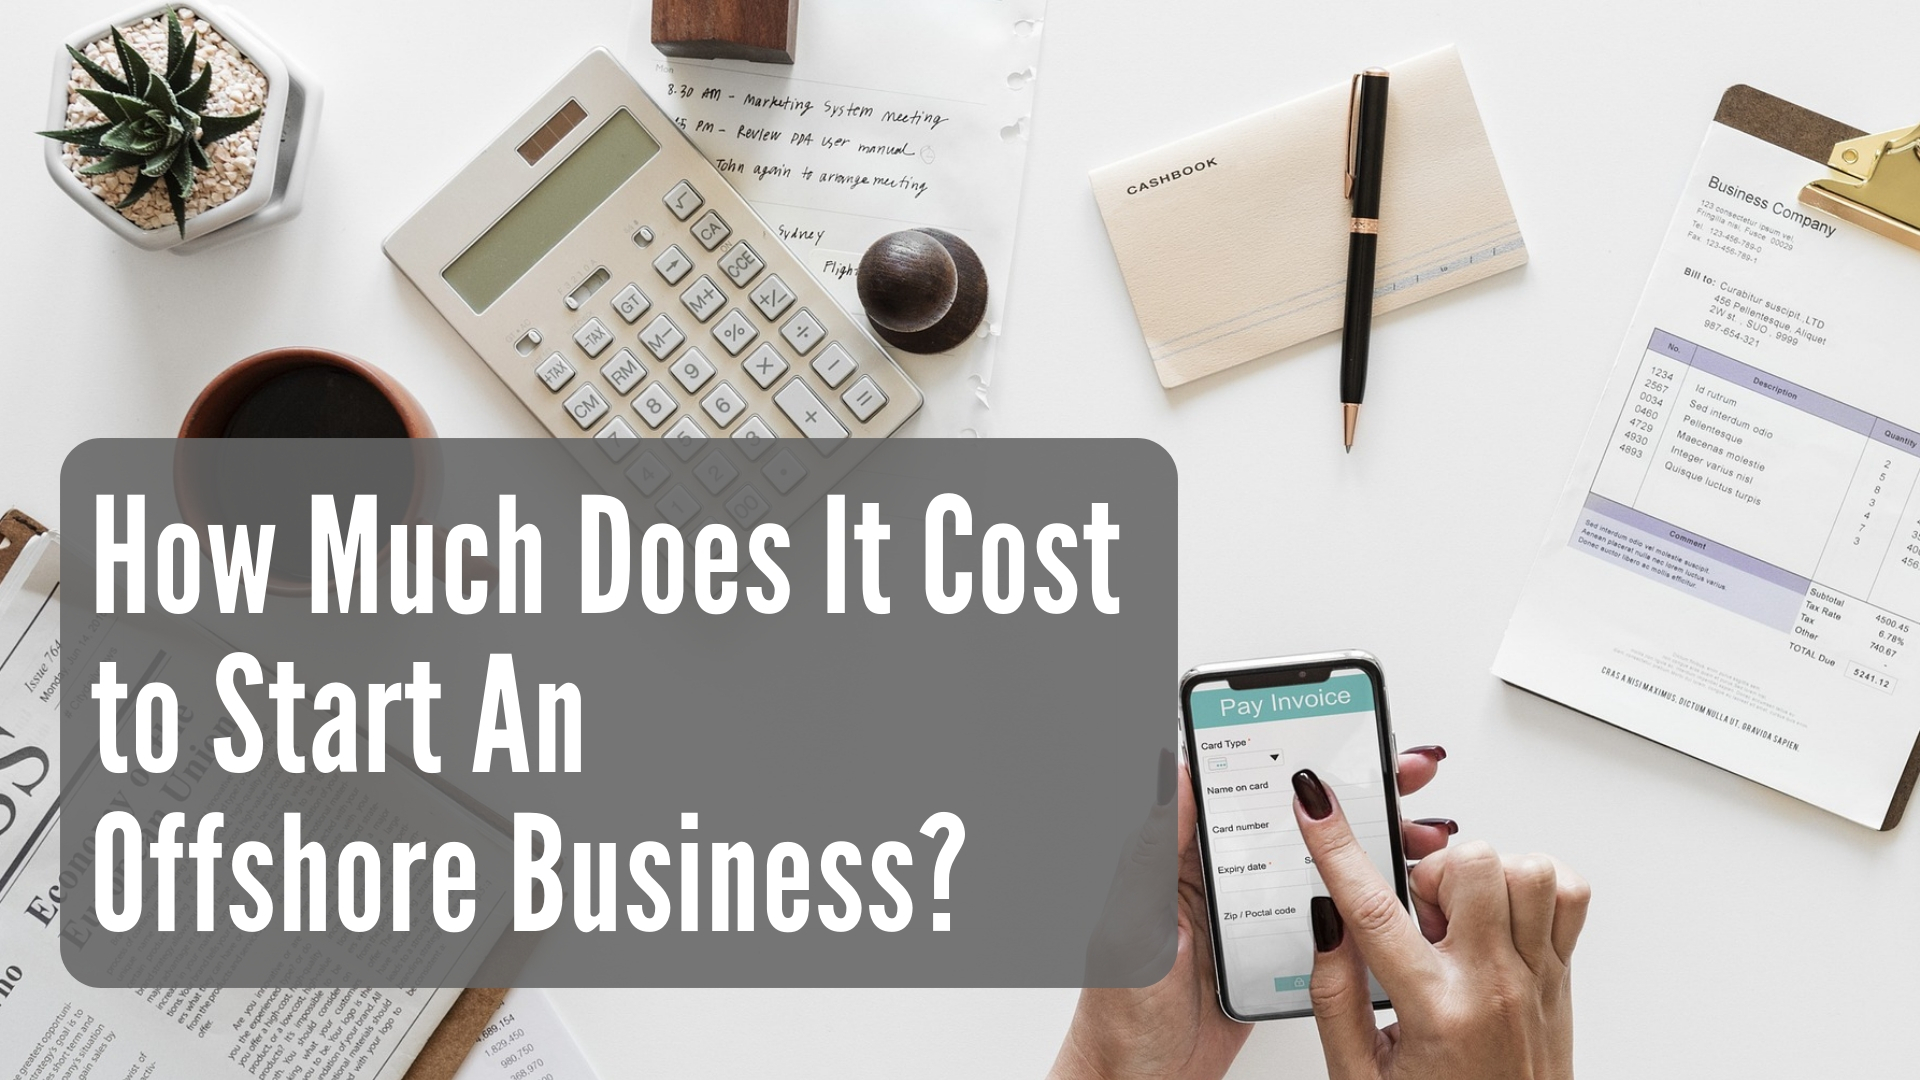 How Much Does It Cost to Start An Offshore Business? | VA